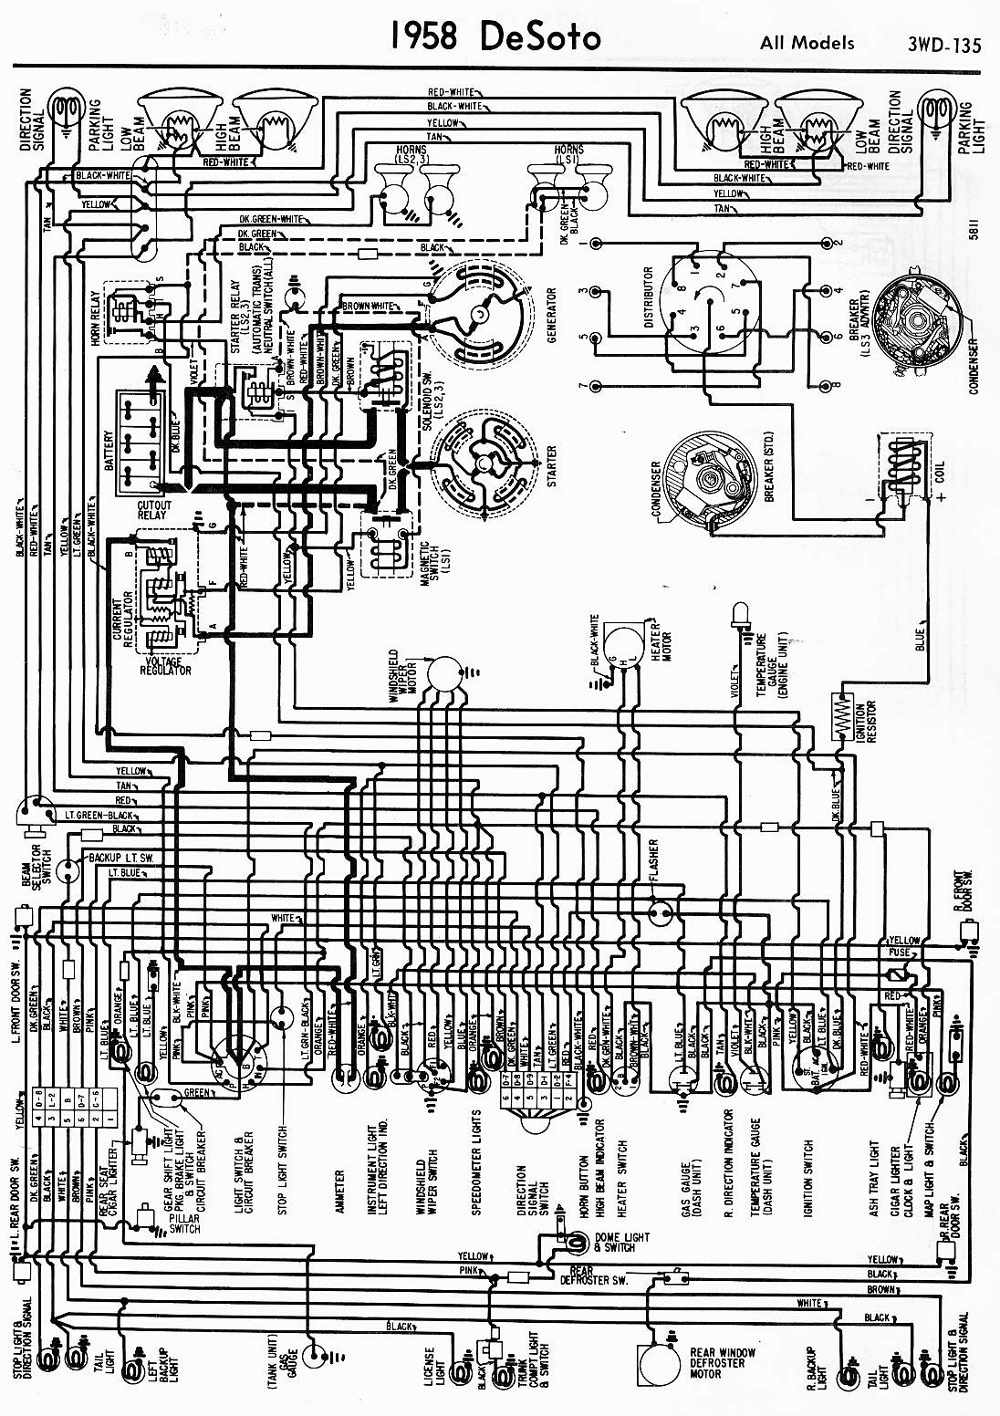 Desoto Gas Gauge Wiring Diagram Studying 1956 Cadillac Harness Schematic Diagrams Rh Ogmconsulting Co